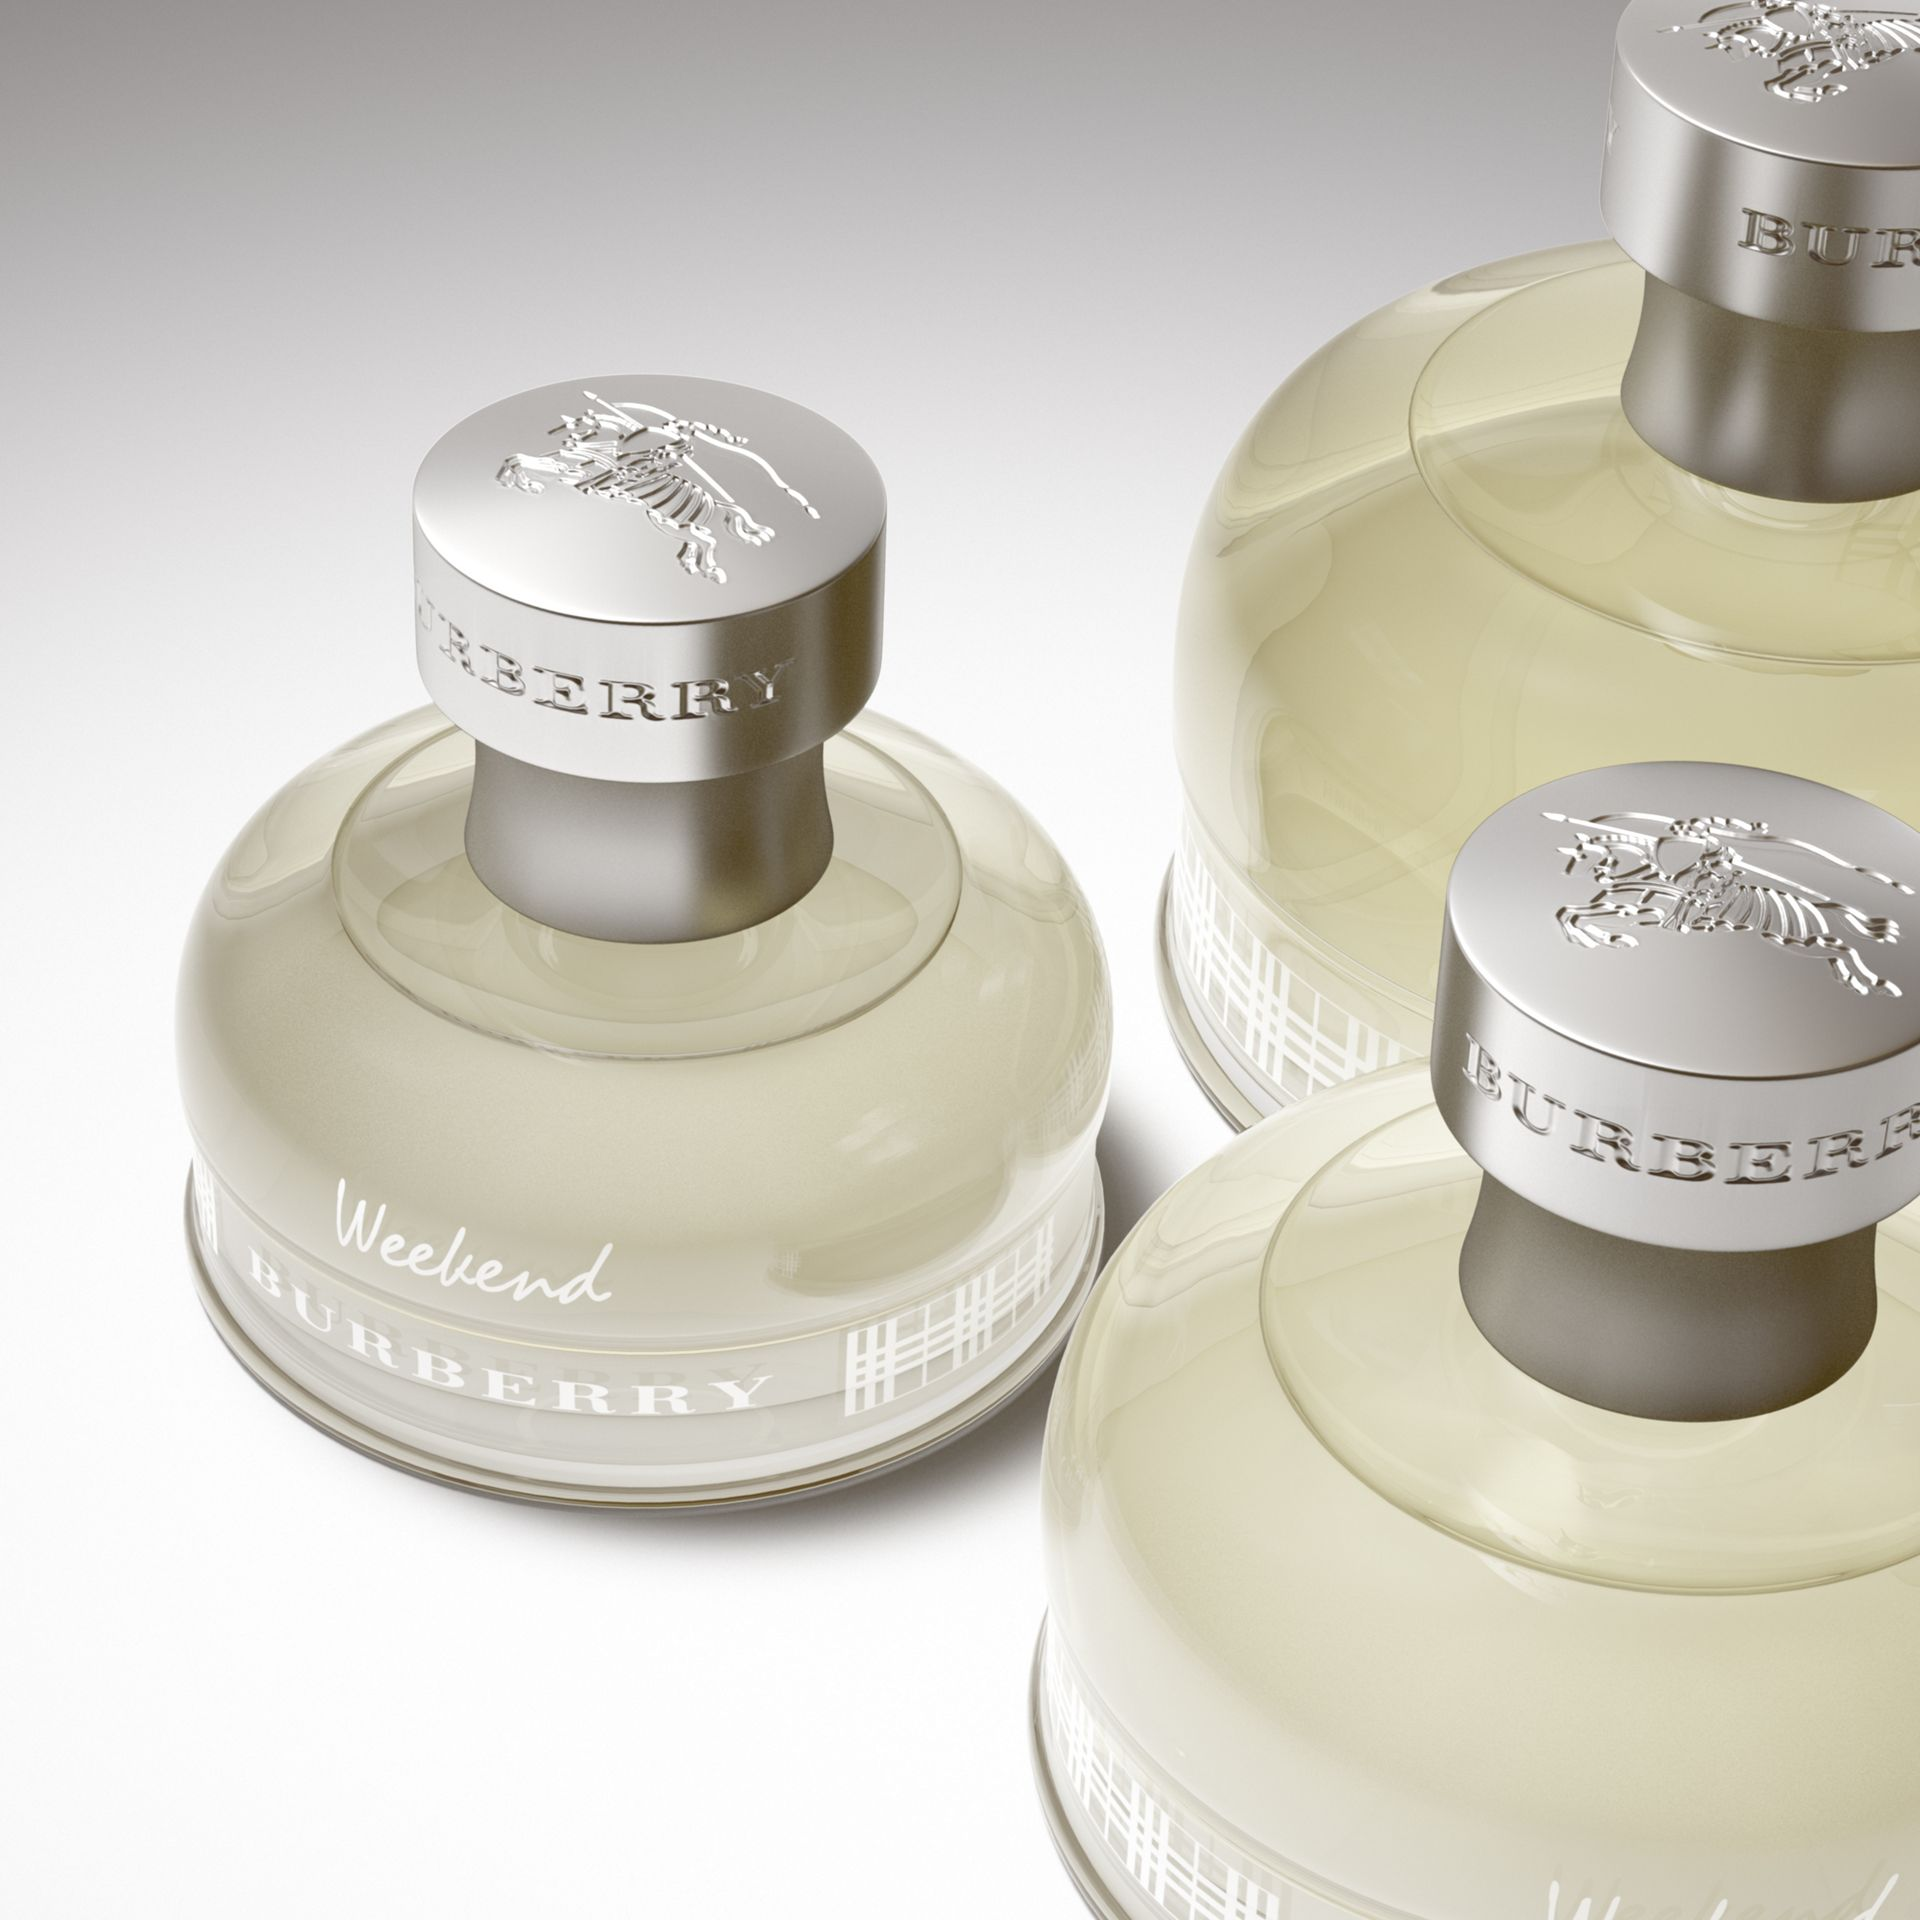 Burberry Weekend For Women Eau De Parfum 30ml - gallery image 2